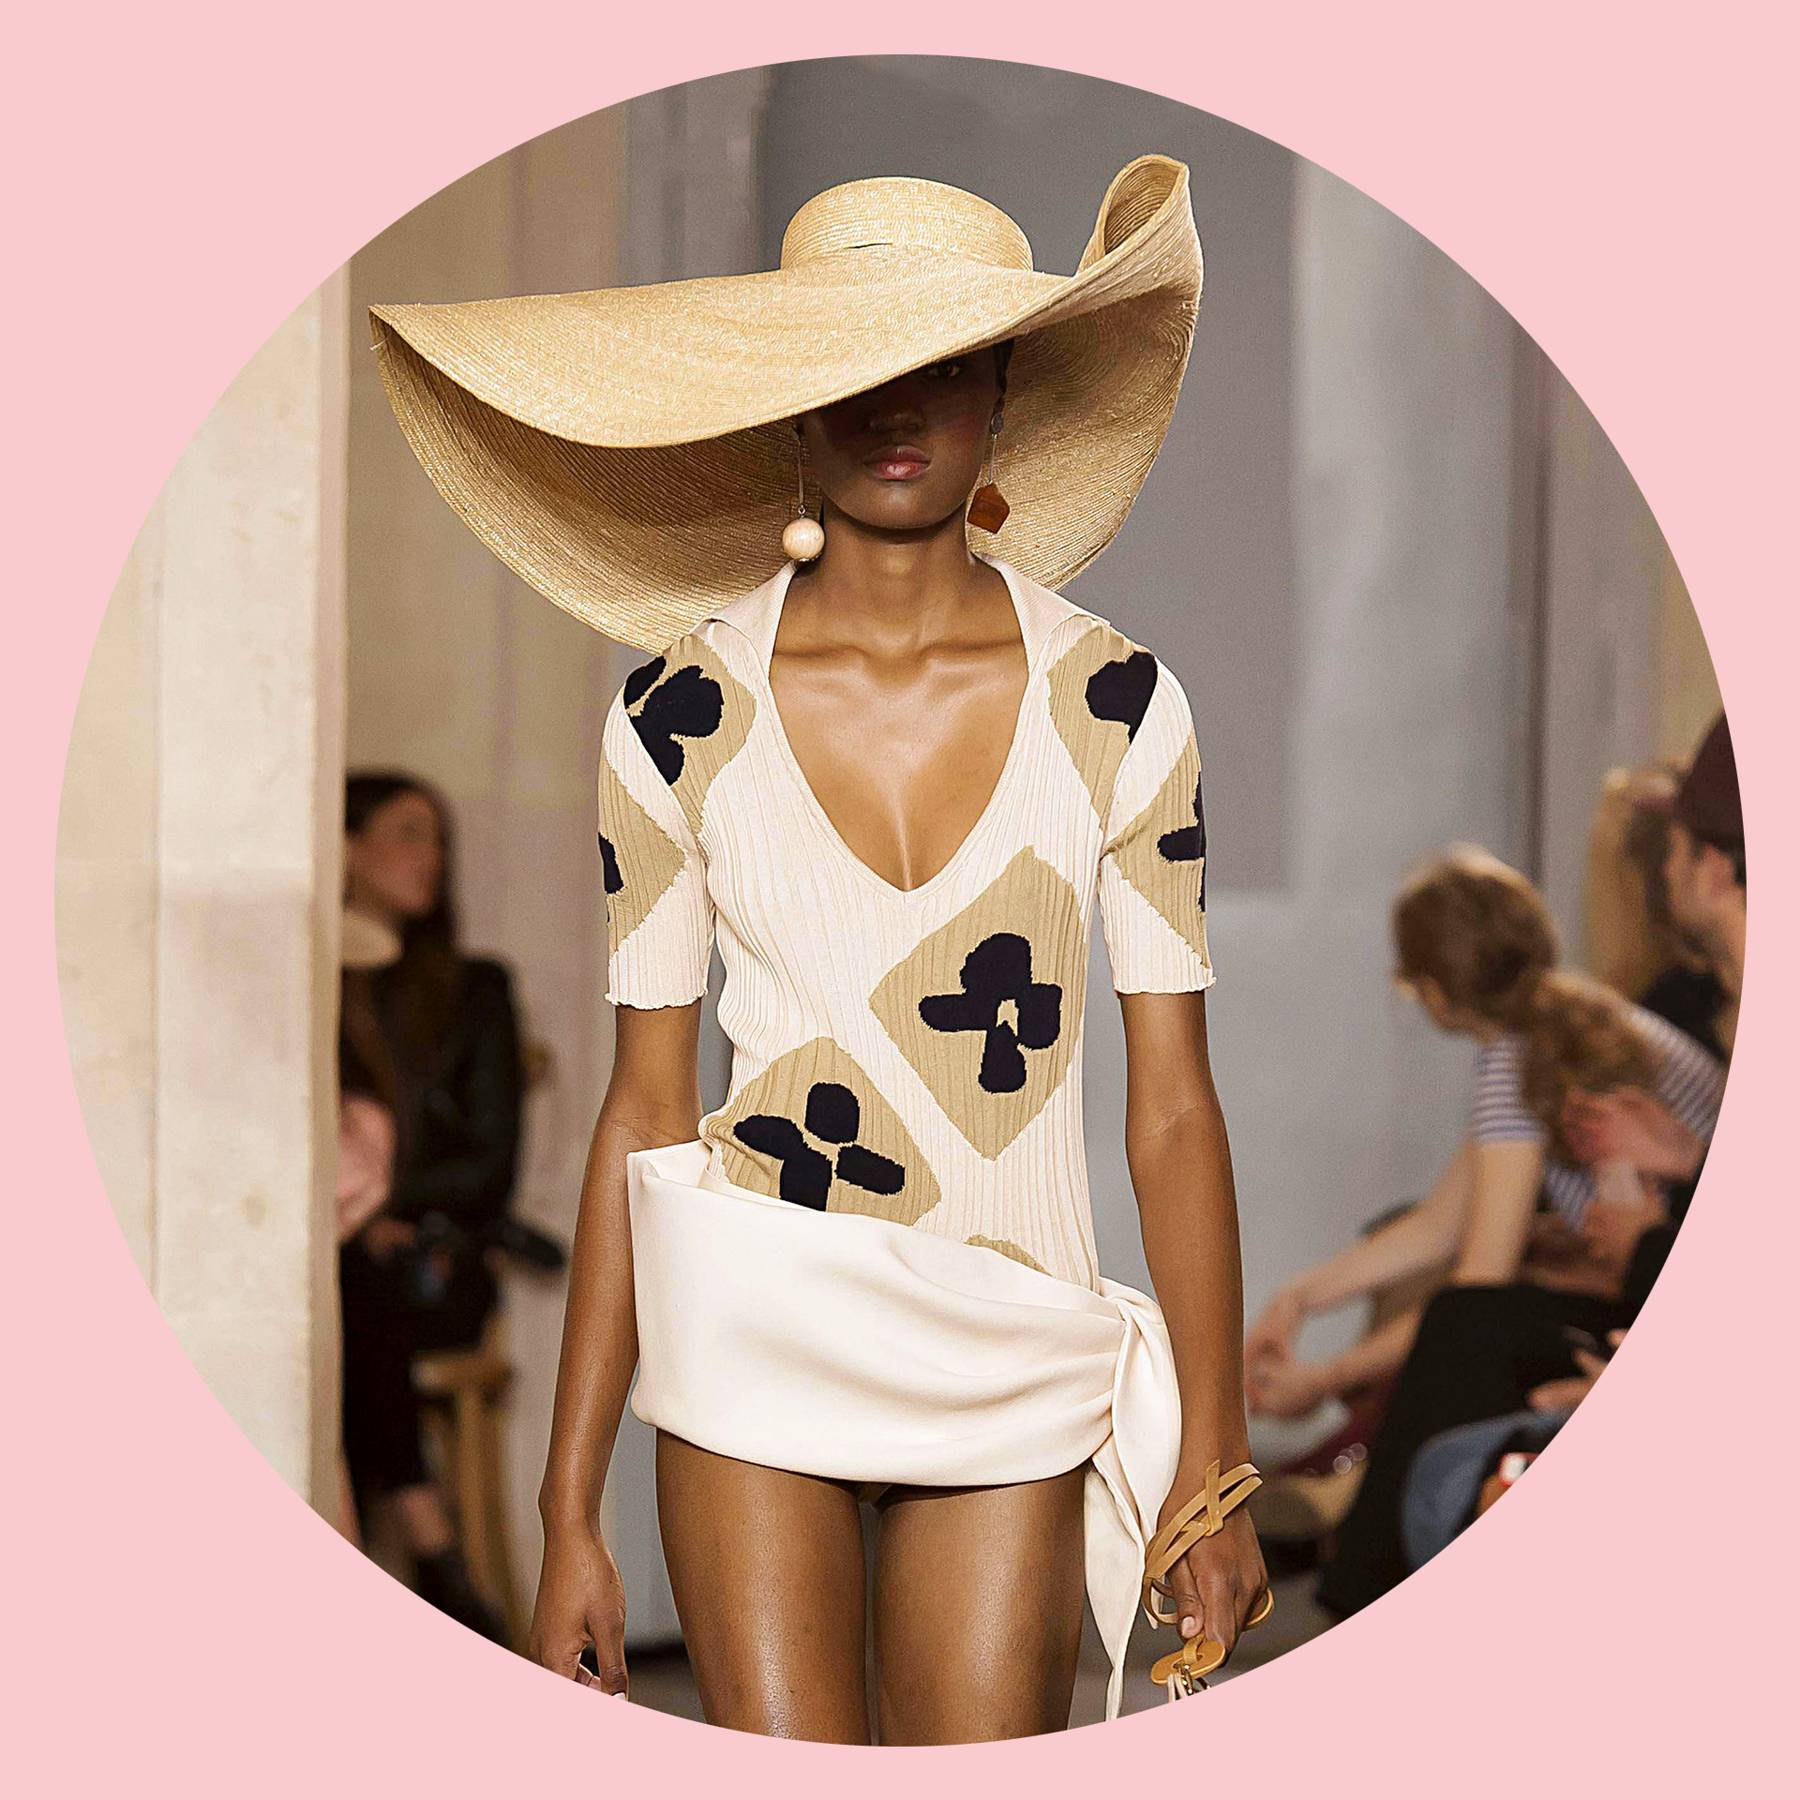 de6565e2 Sun Hats: The Best Summer Sun Hats And Caps 2018 | Glamour UK